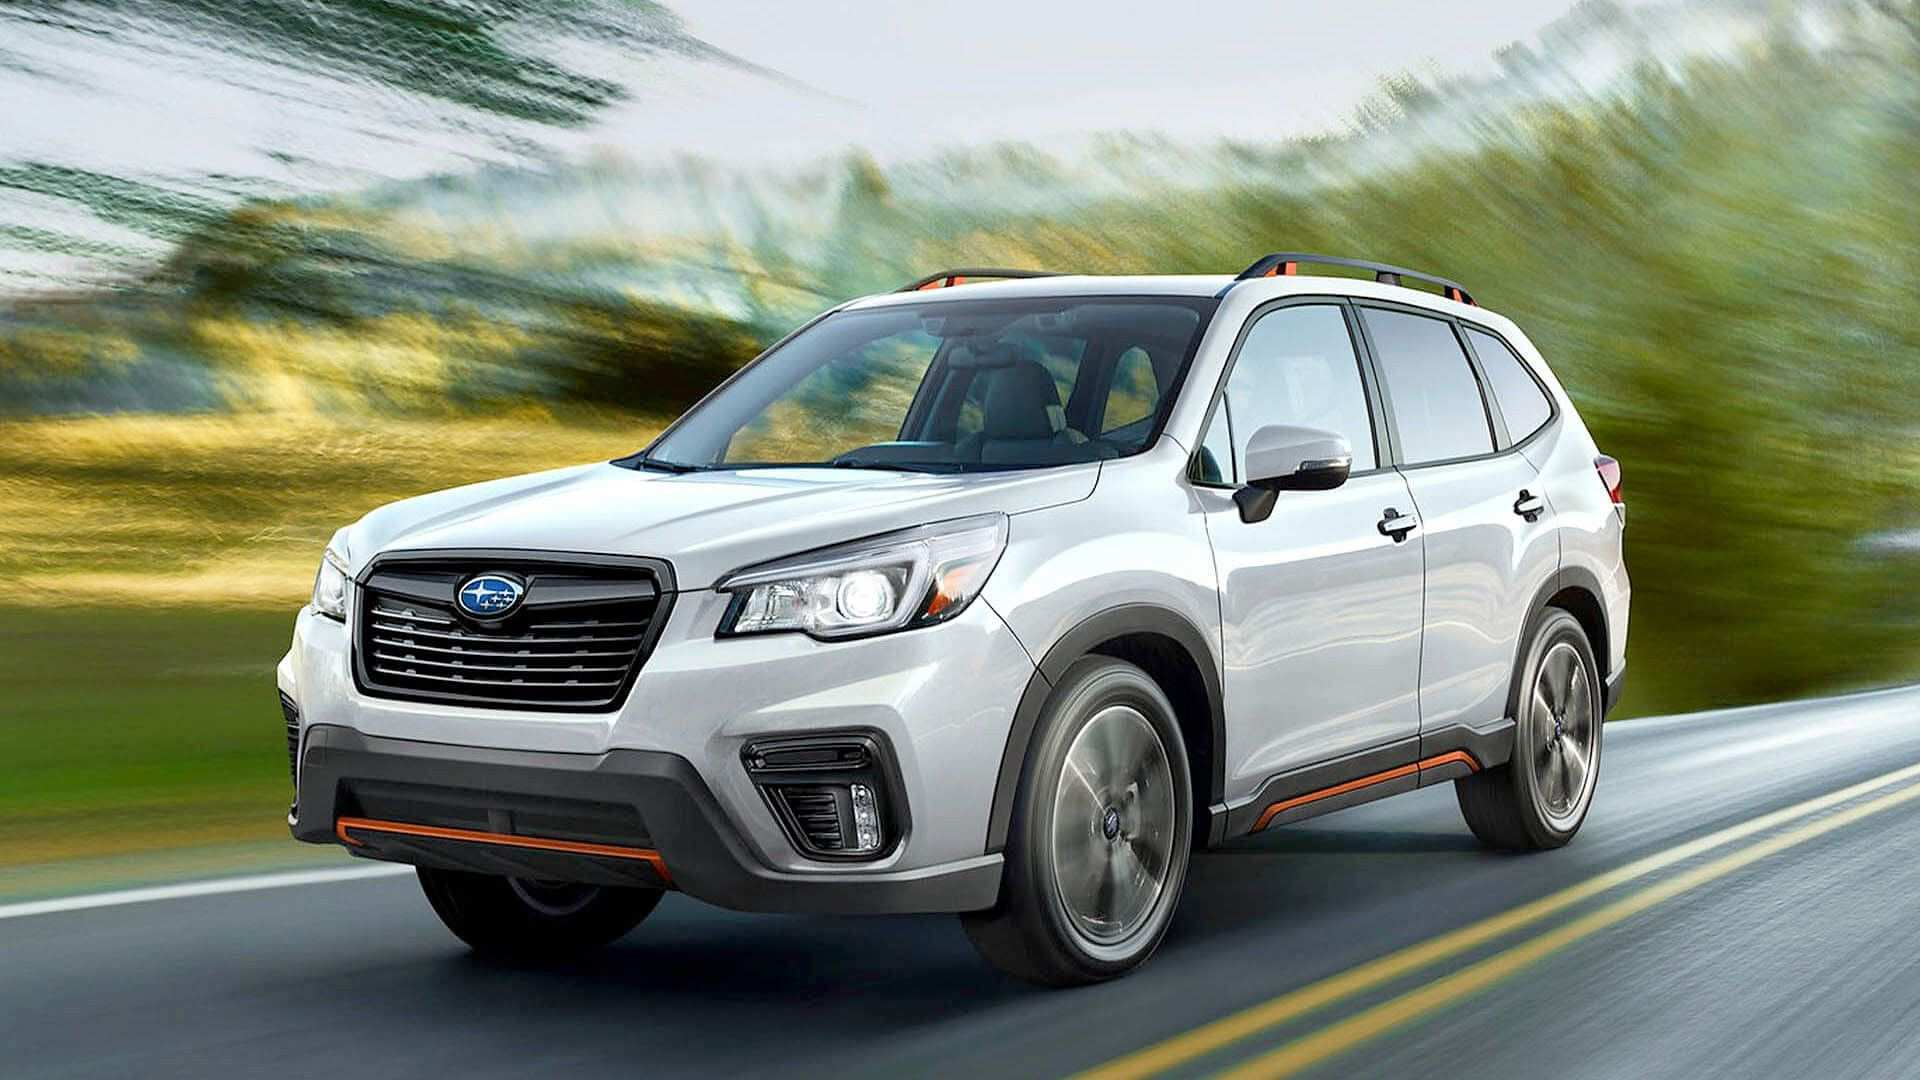 35 All New Subaru Forester 2020 News Pictures for Subaru Forester 2020 News